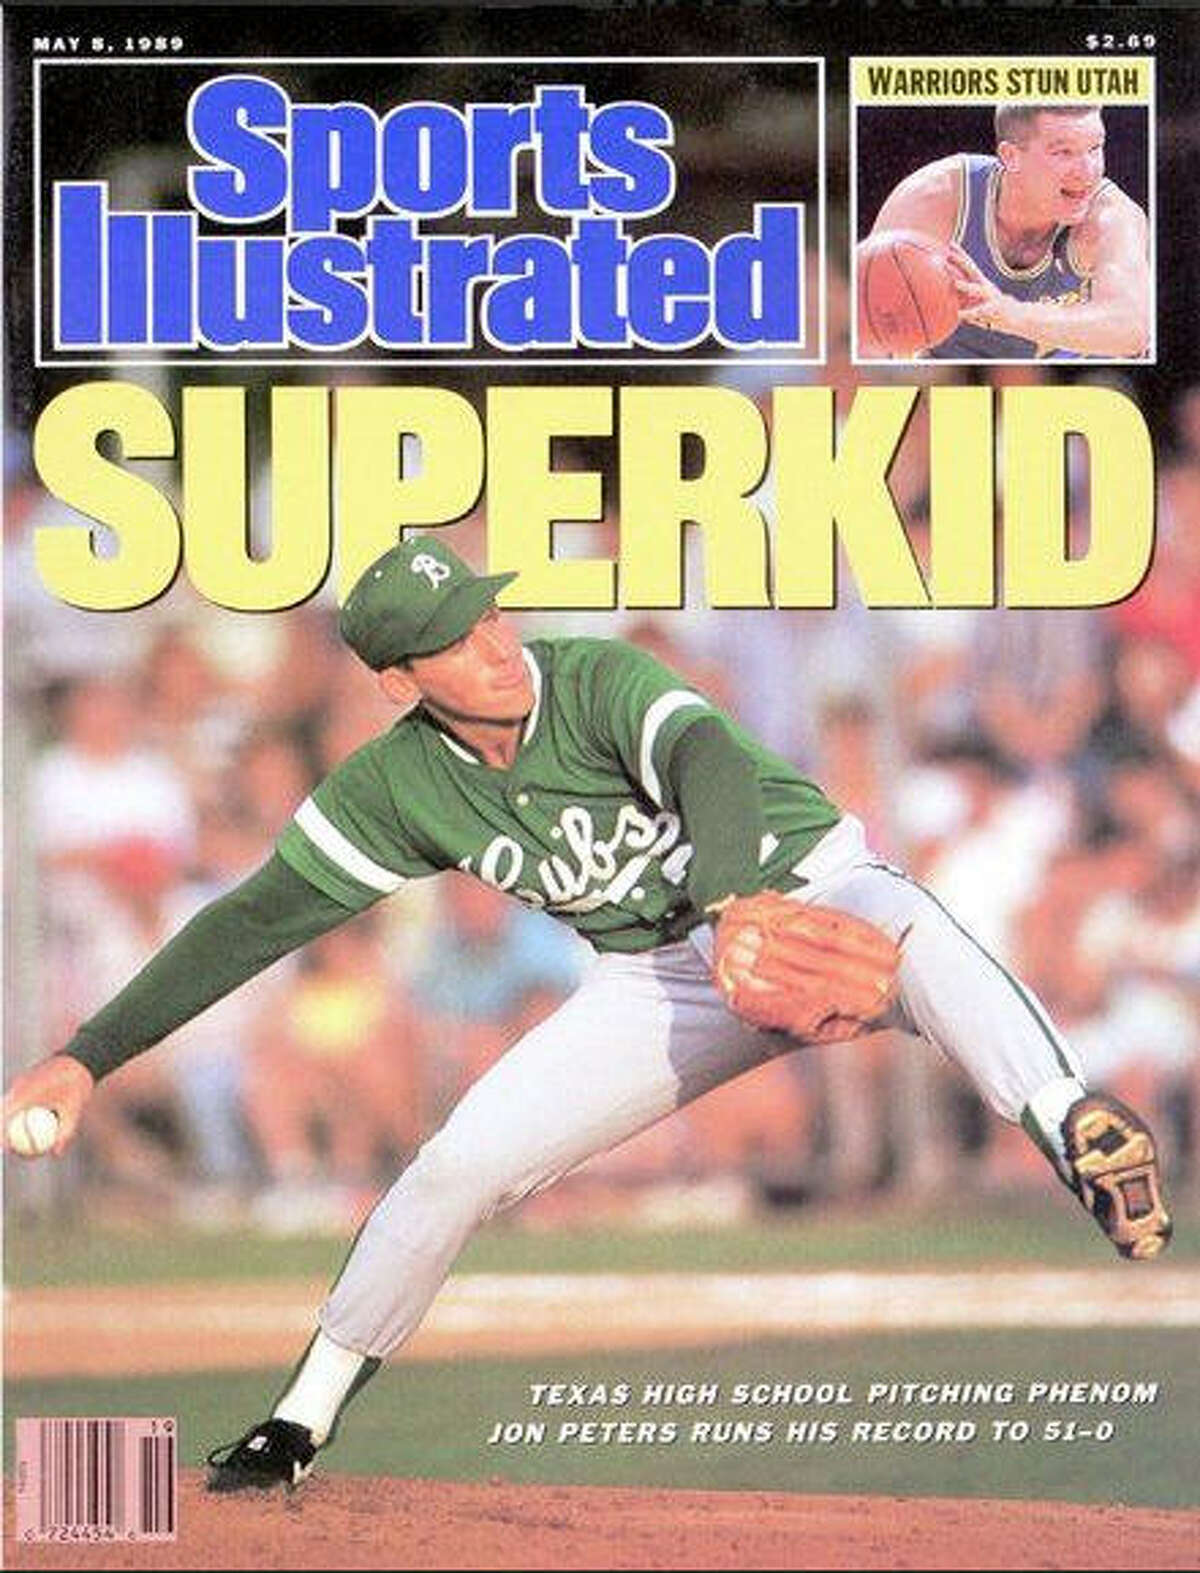 Jon Peters was featured on the cover of Sports Illustrated's May 8, 1989 issue after running his record at Brenham High School to 51-0.